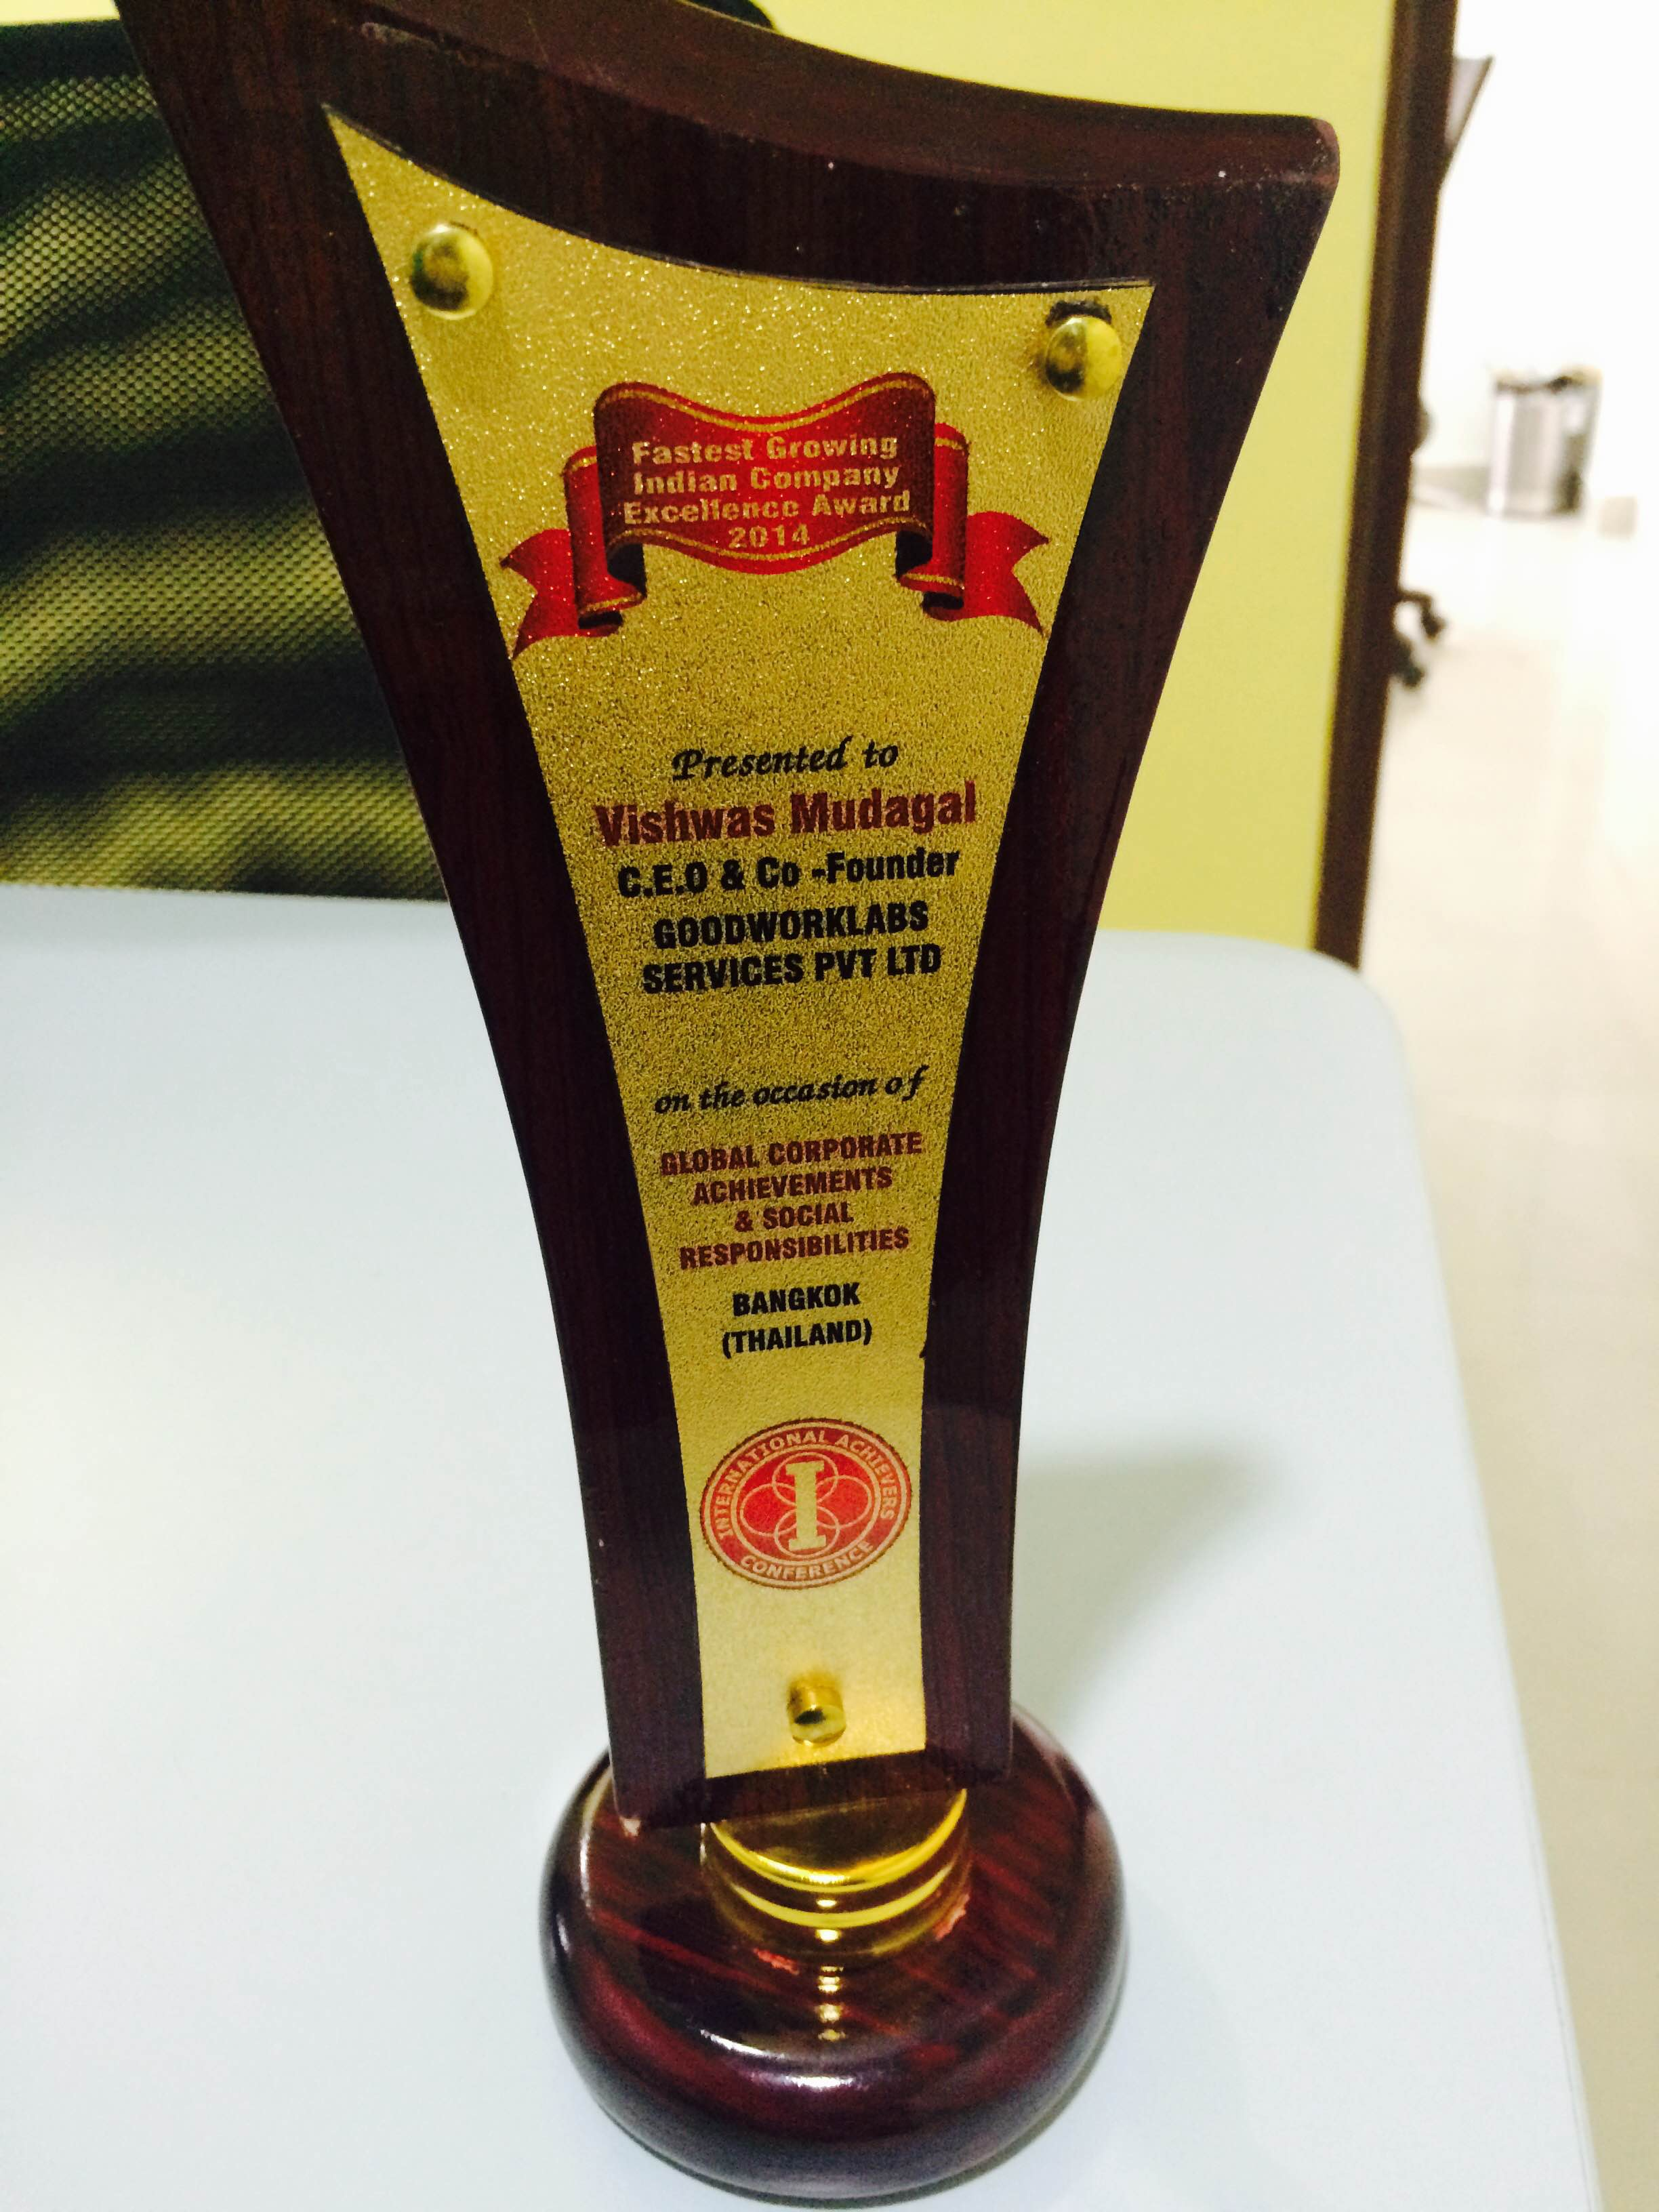 goodworklabs-fastest-growing-indian-company-award-2014